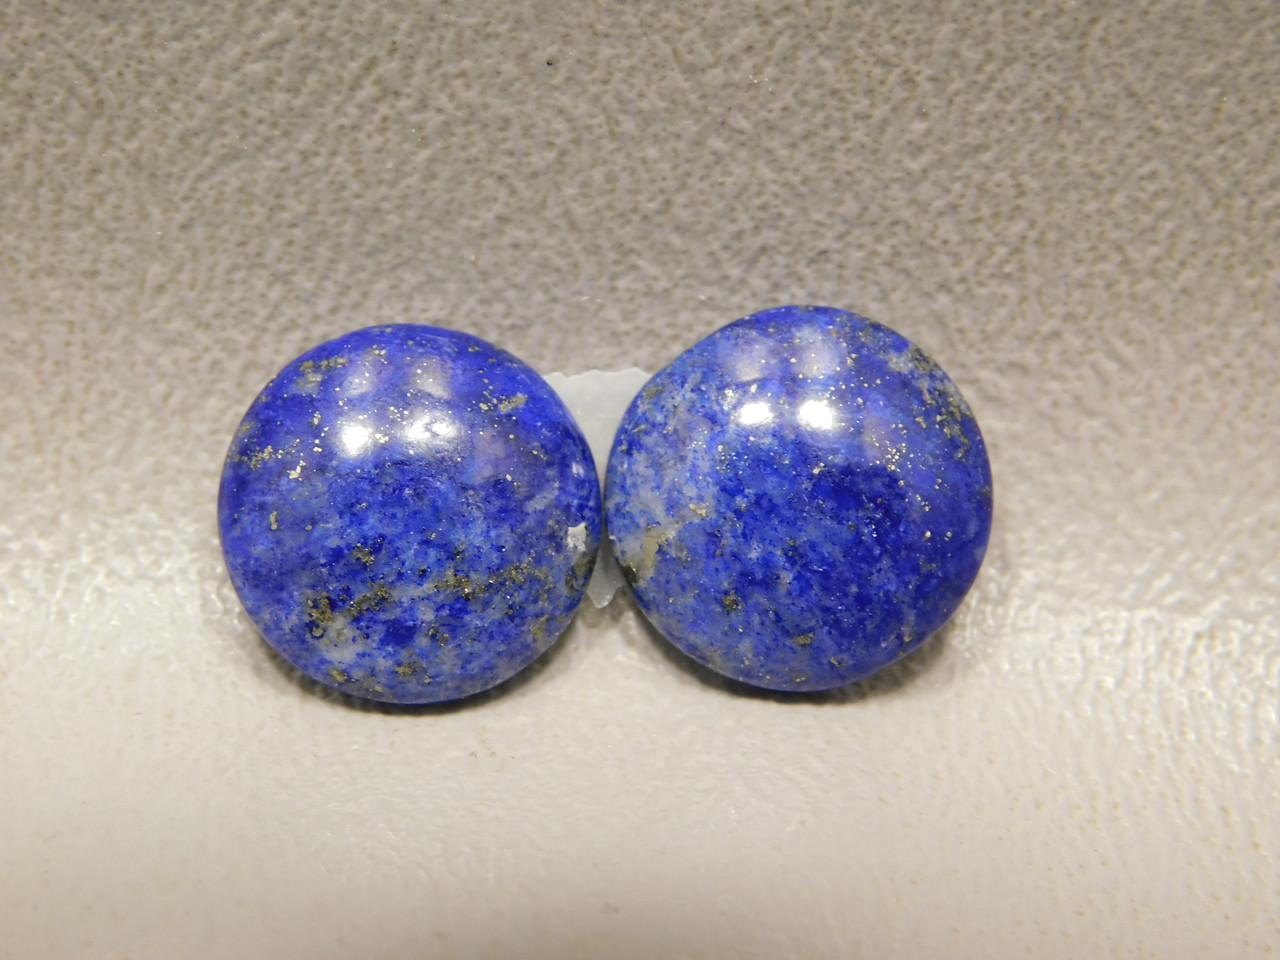 Cabochons Natural Stones Lapis Lazuli 13 mm Rounds Matched Pairs #4